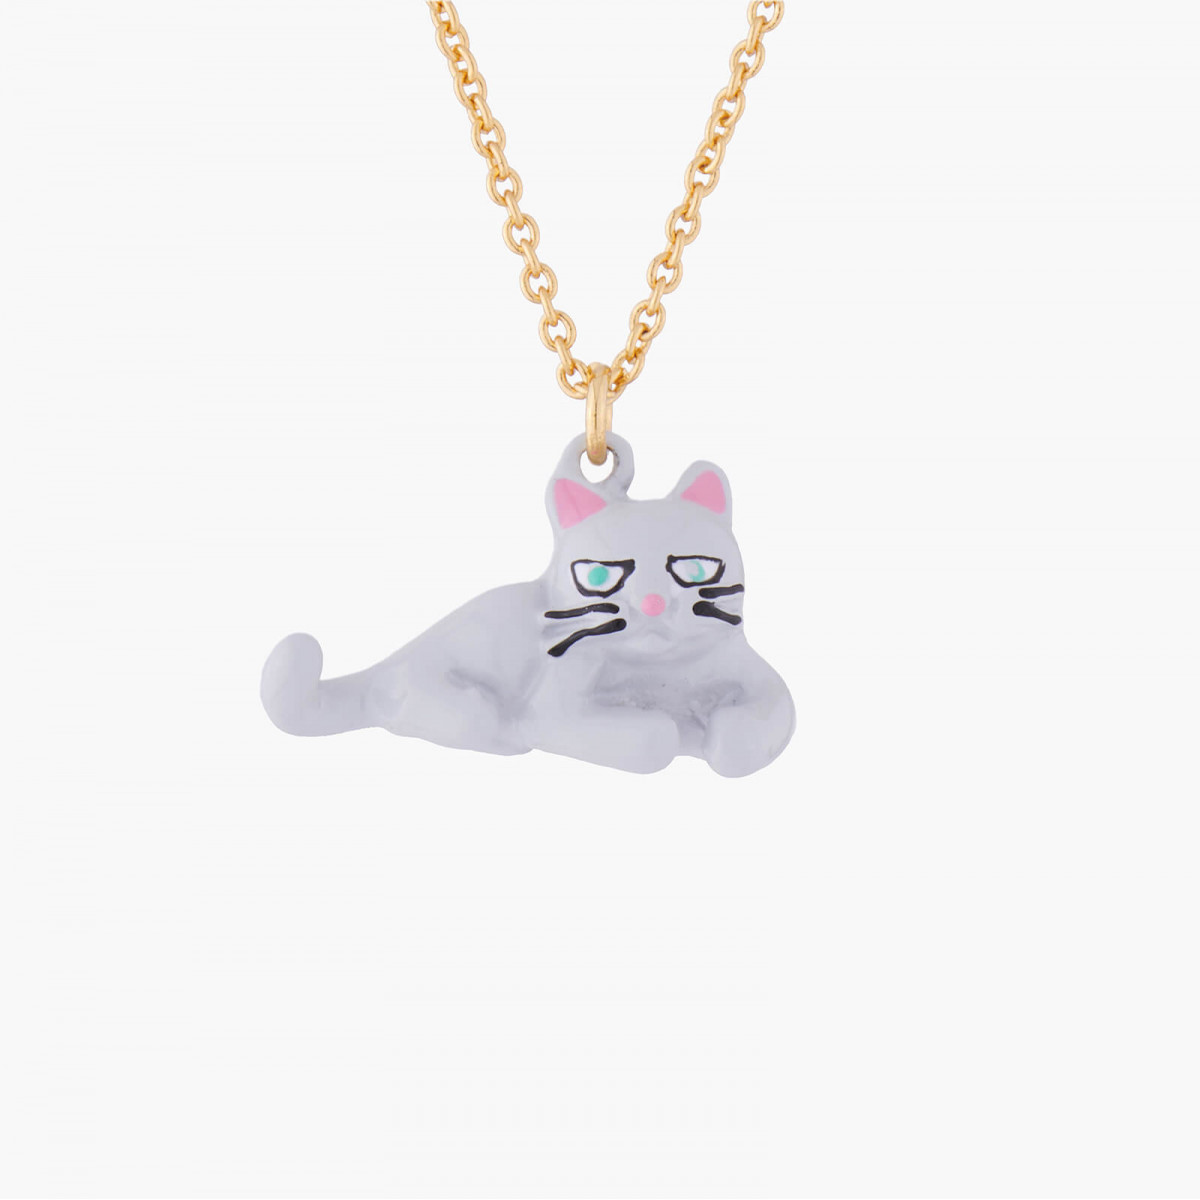 Colliers Collier Pendentif Chat Persan